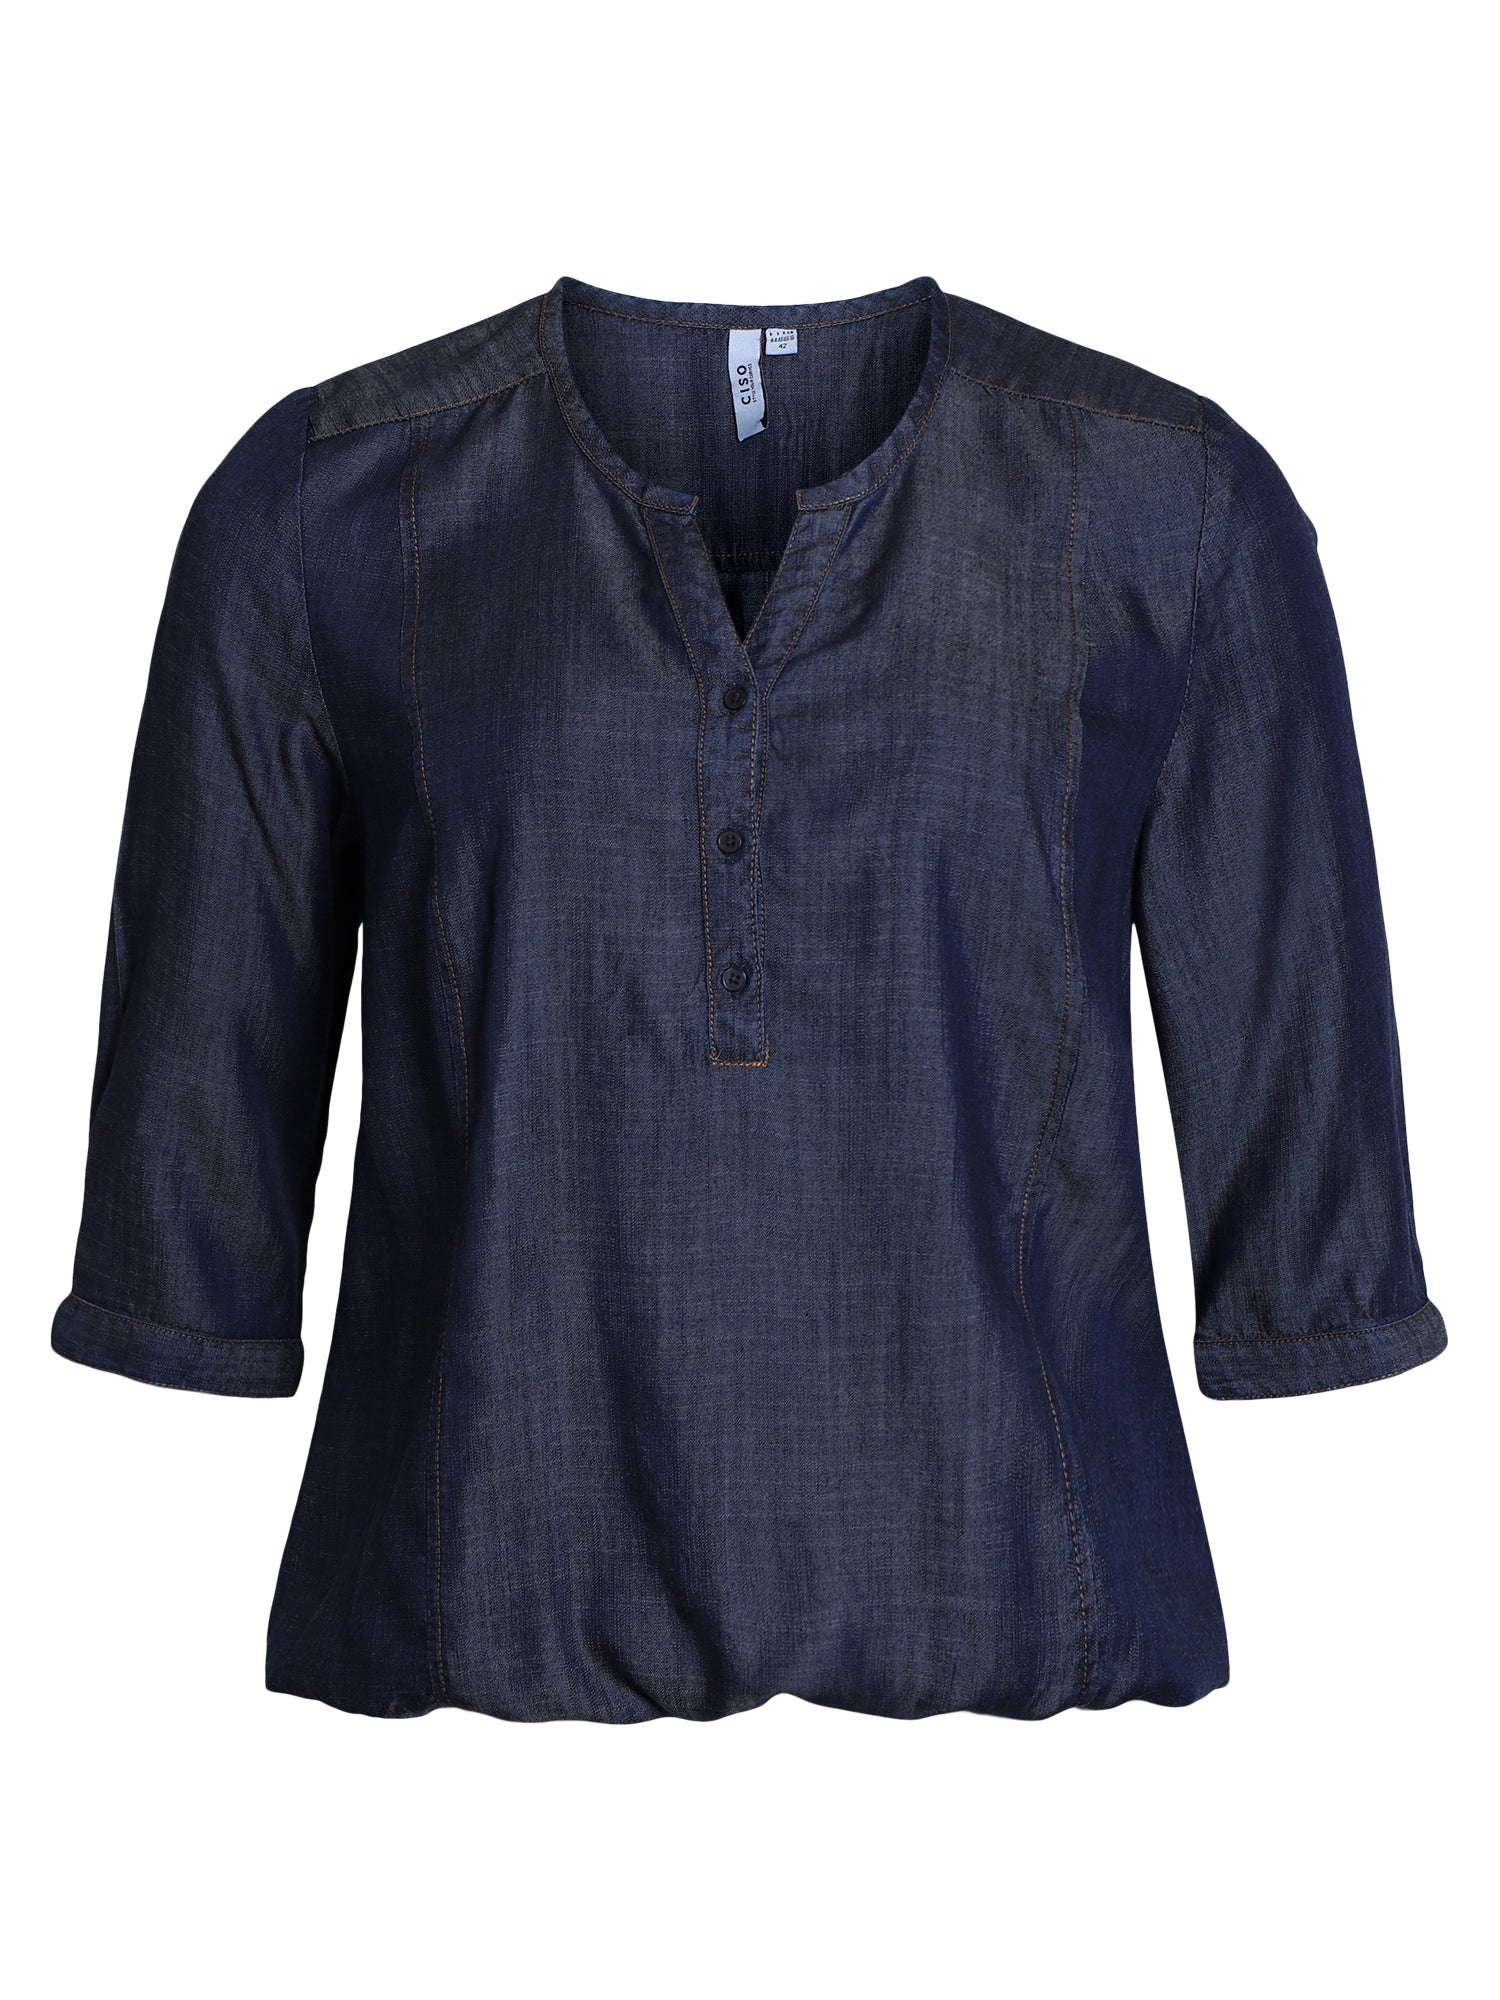 Image of   Bluse - Denim Blue